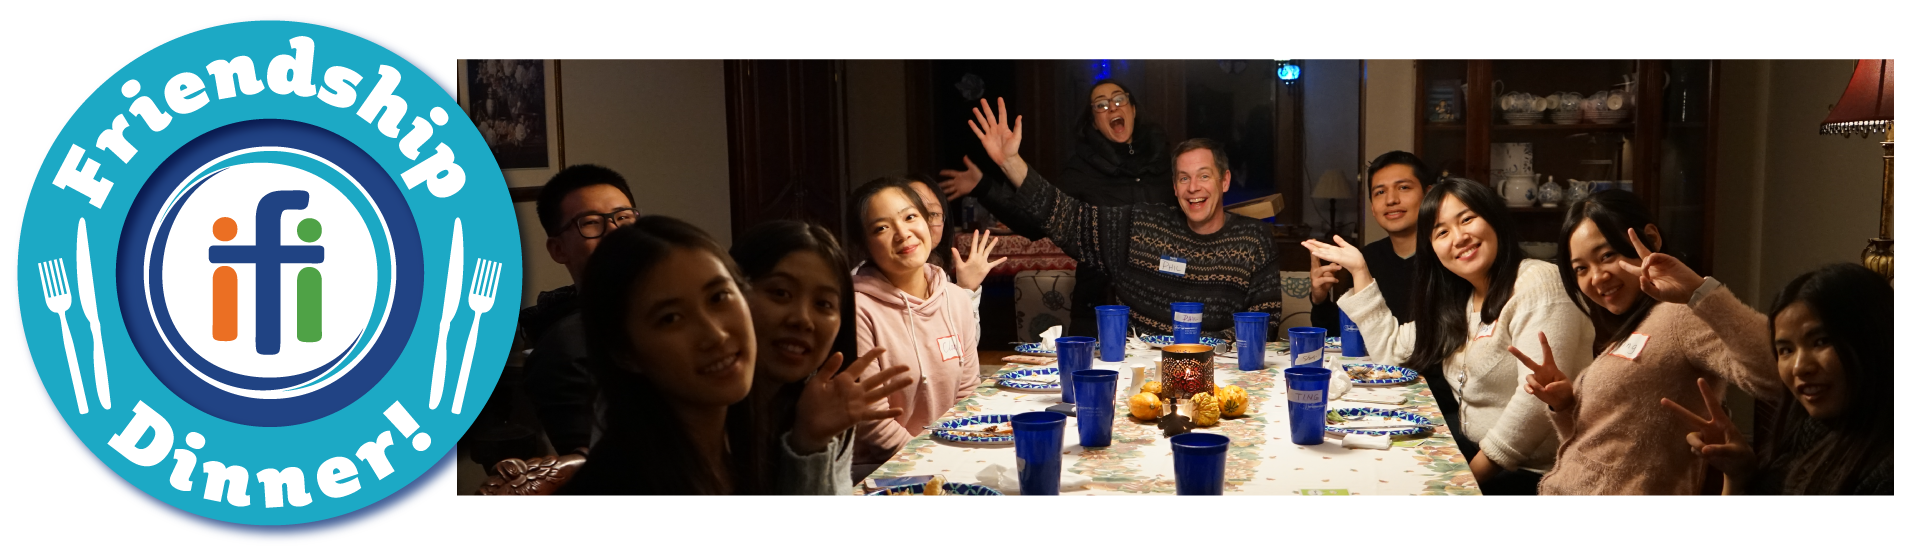 Friendship Dinner February 15th, 2020